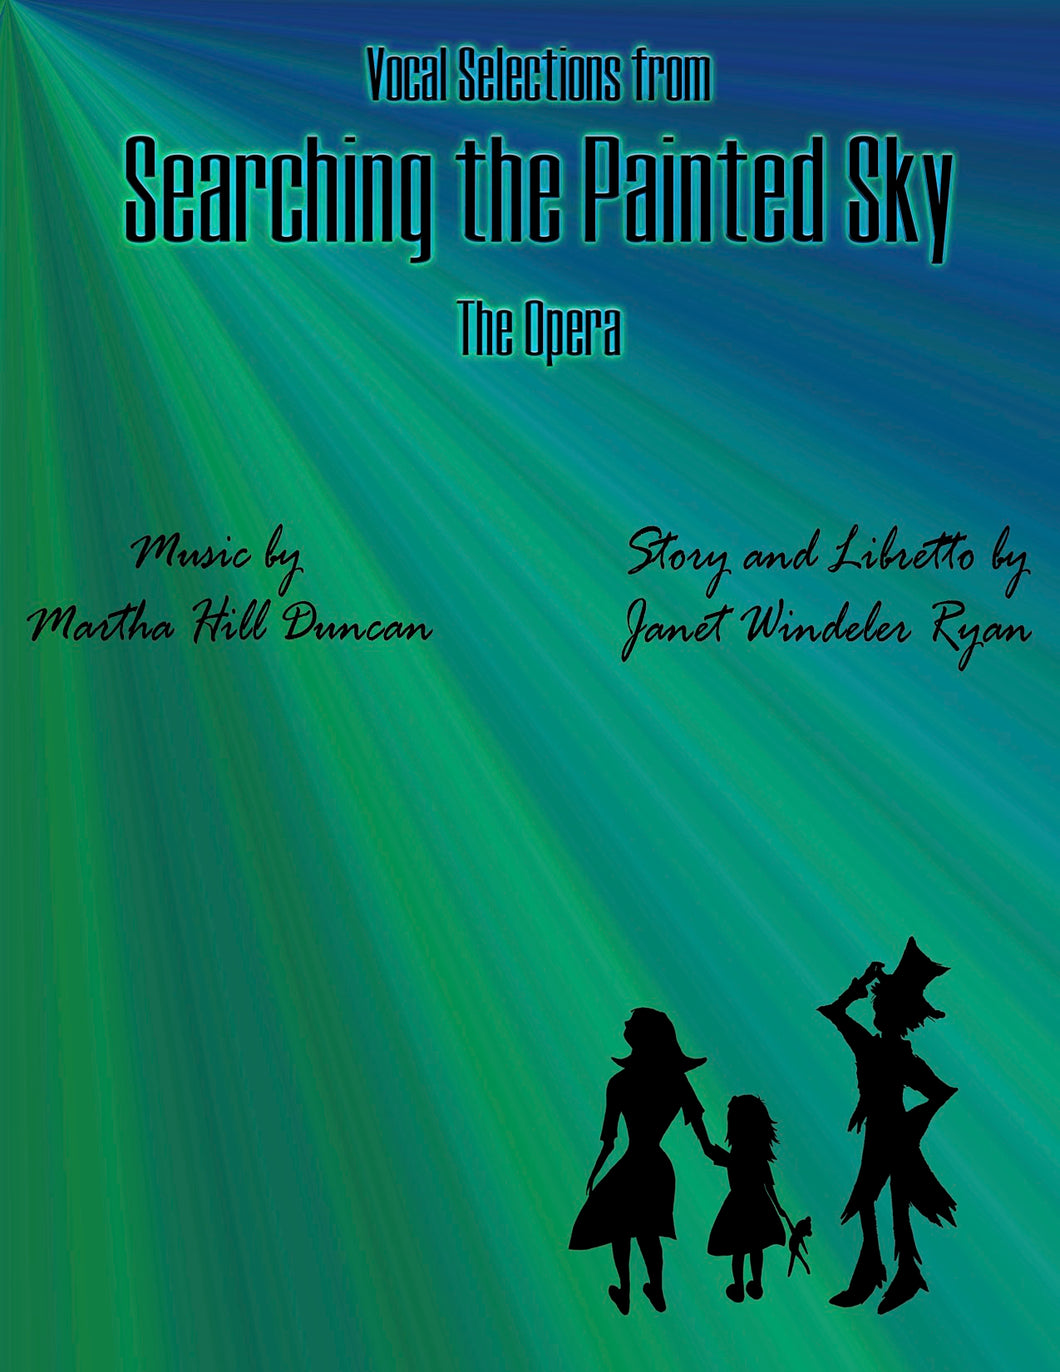 Vocal Selections from SEARCHING THE PAINTED SKY, THE OPERA - Vocal Collection